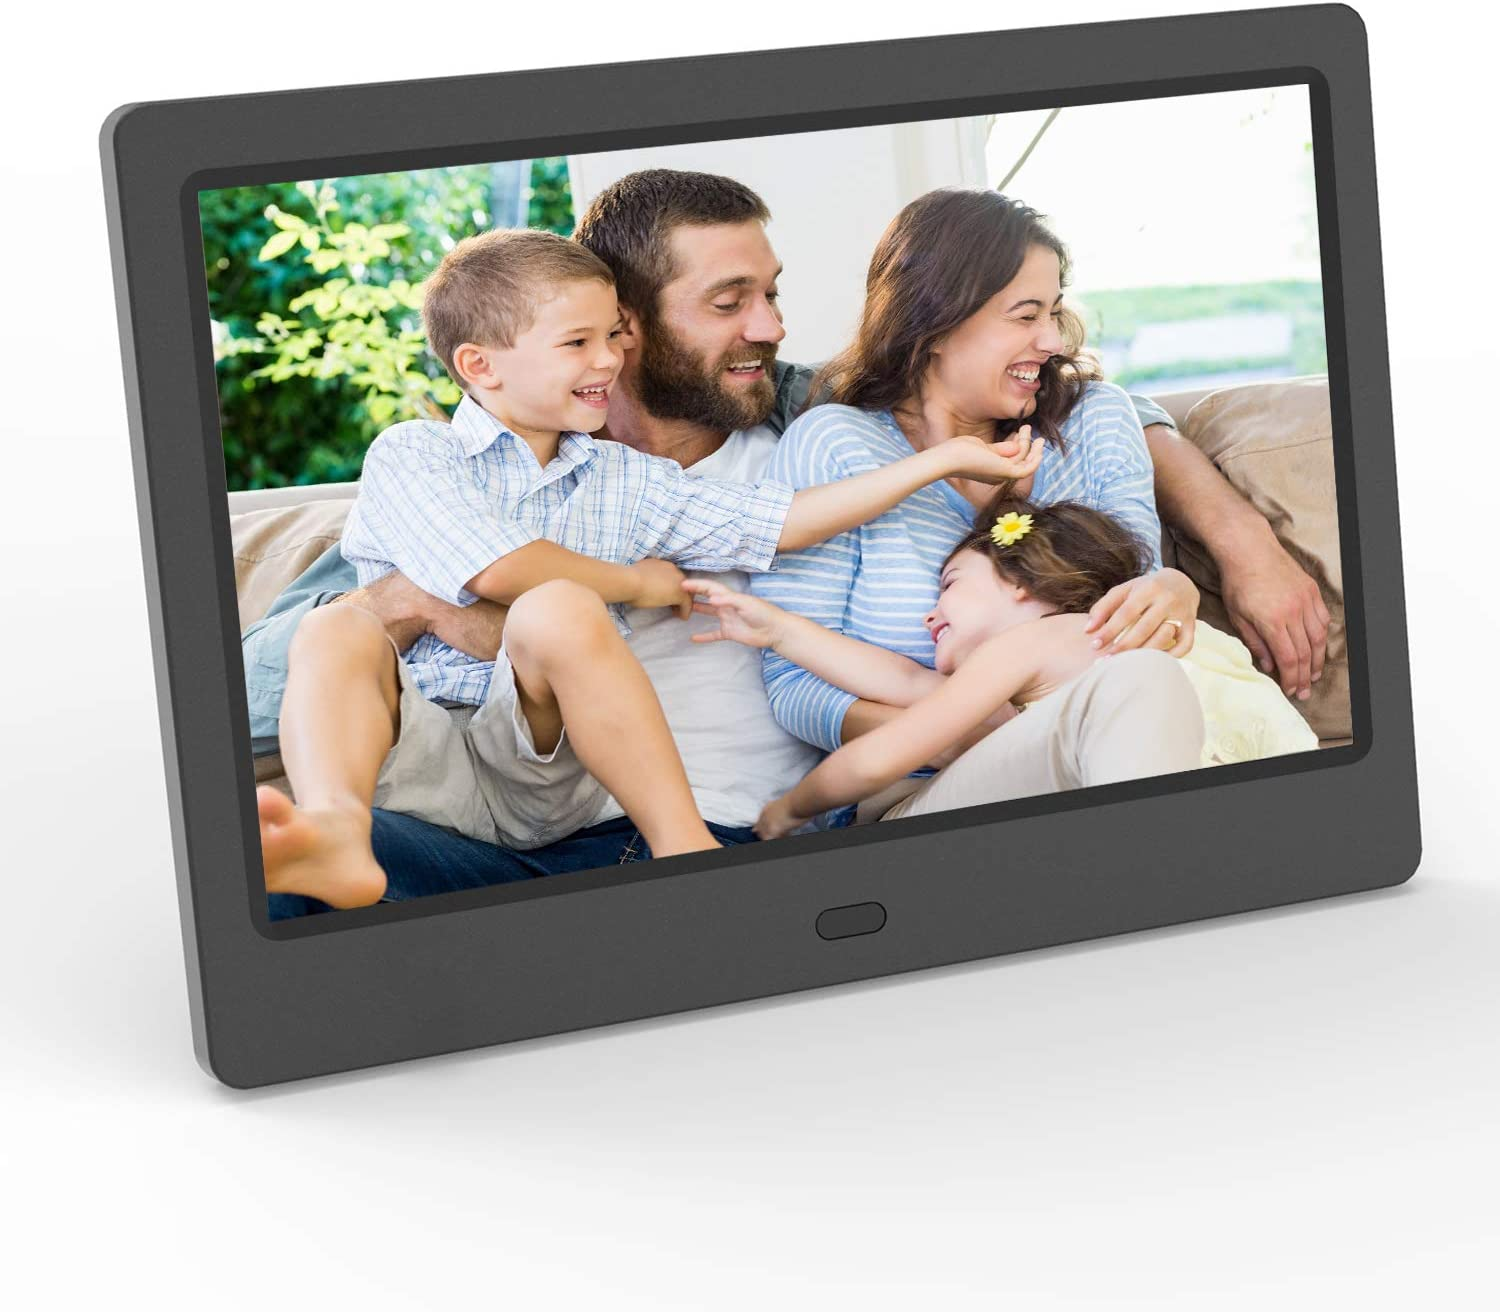 Digital Picture Frame 7 Inch Photo Slideshow LCD Widescreen – Vucatimes F7 USB SD Card Slots Music Video Calendar Support Remote Control Auto Power On and Off – Black